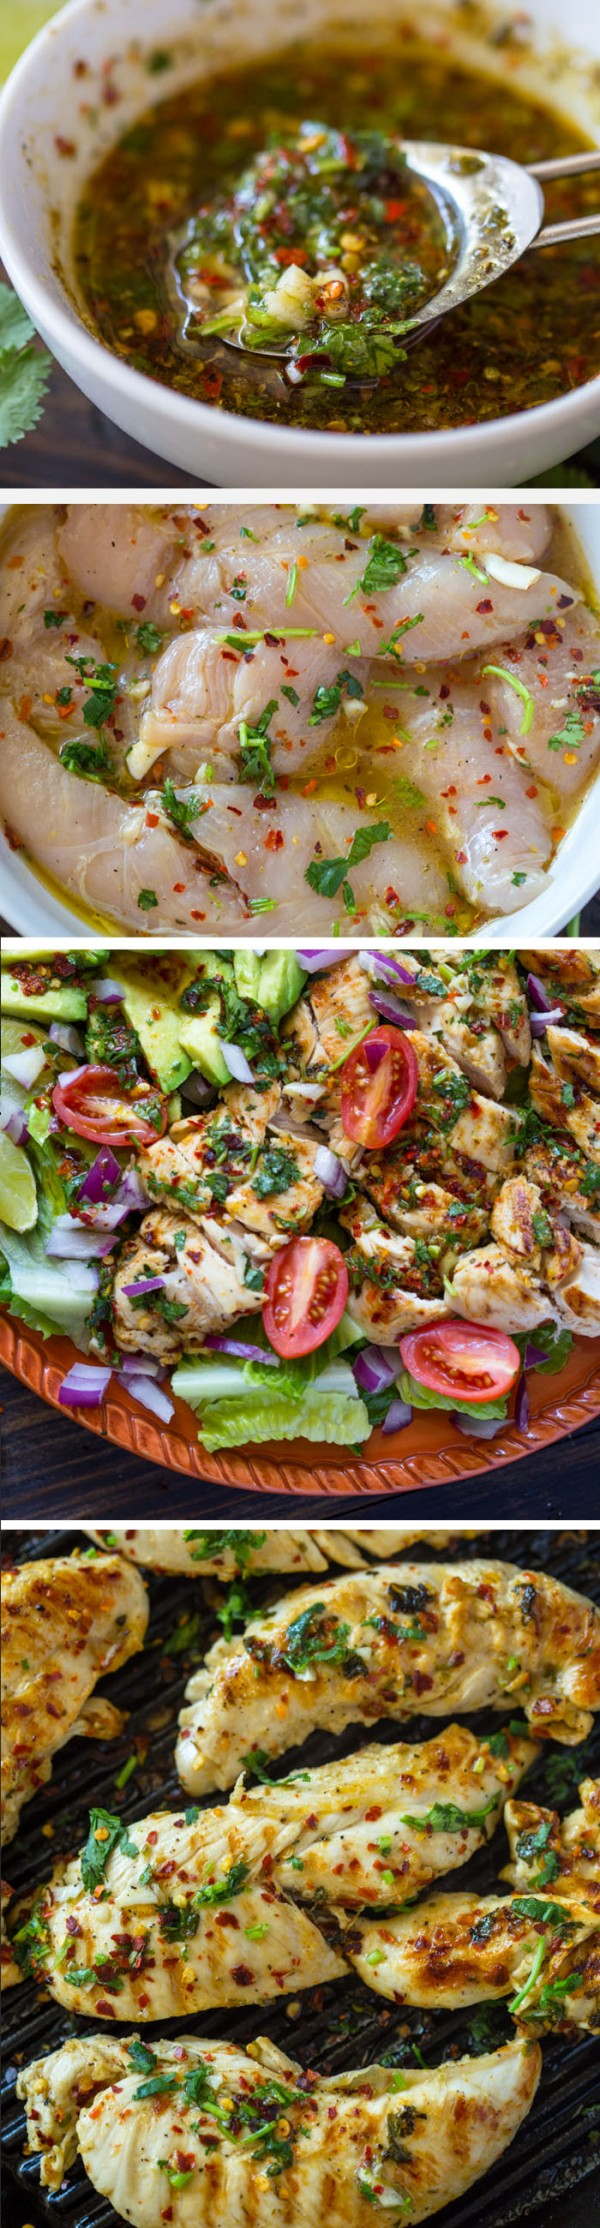 20 Unforgettable Chicken Recipes for a Romantic Dinner for Two - Get the recipe Grilled Chili Cilantro Lime Chicken @recipes_to_go